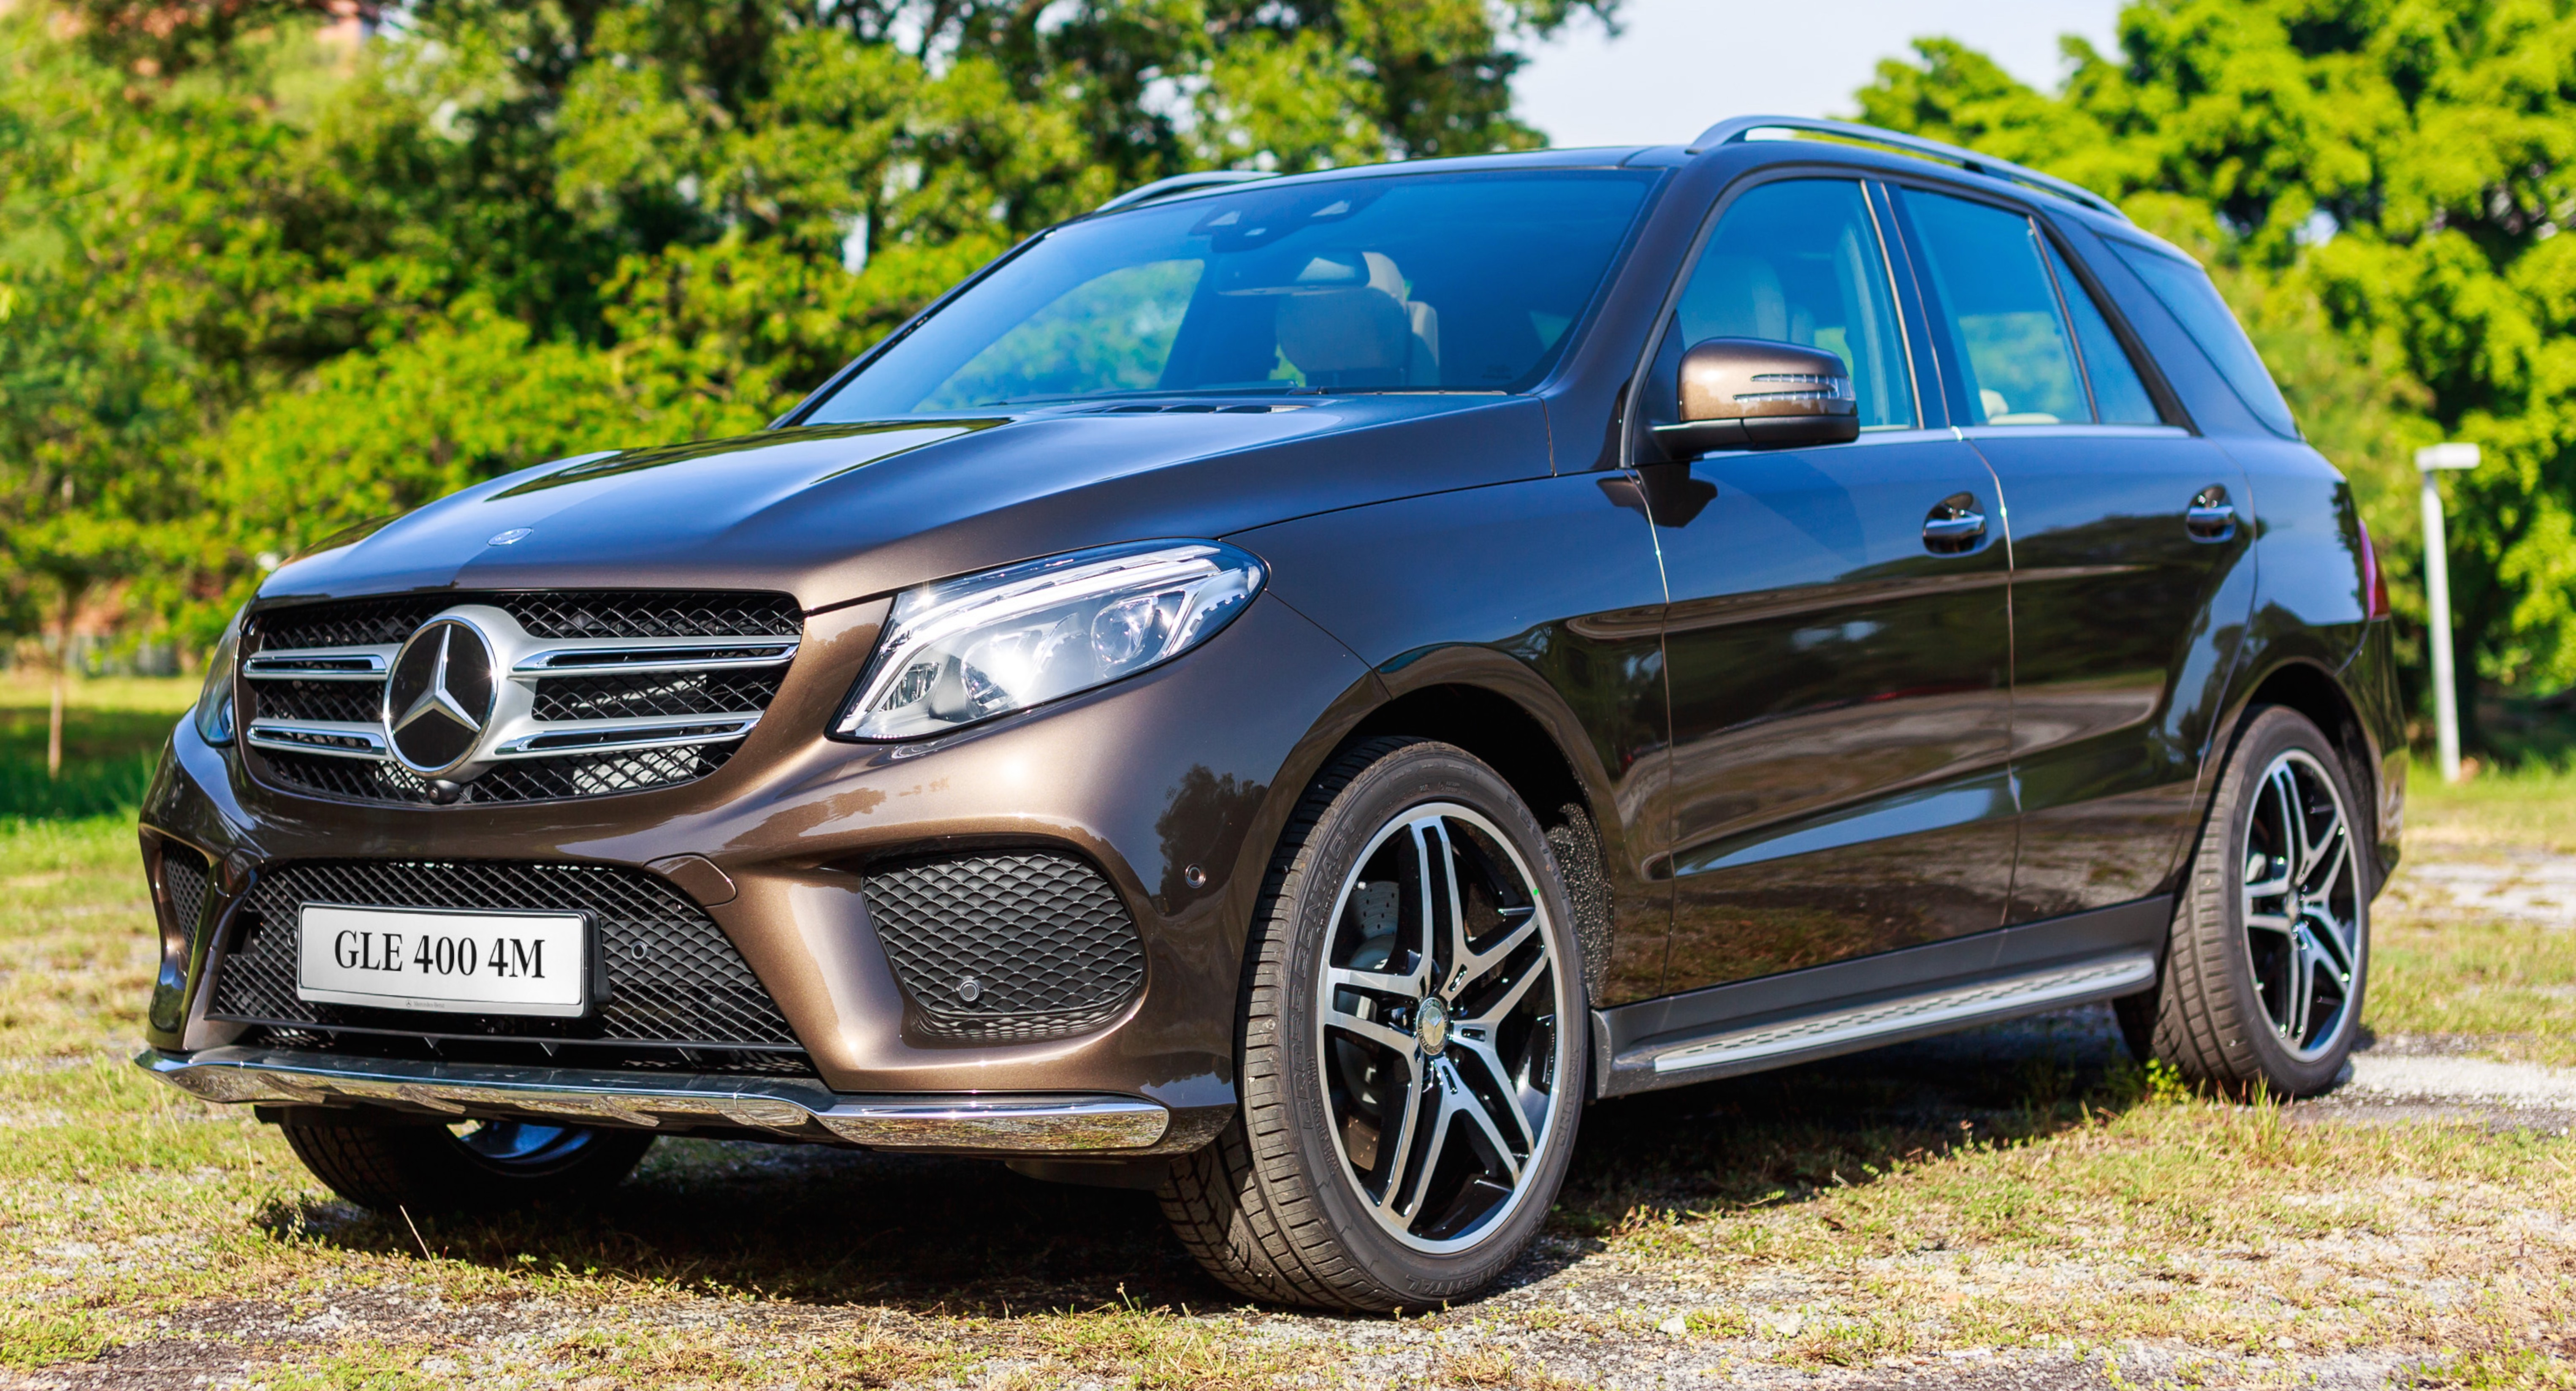 Mercedes Benz GLE 400 GLE 250 D Debut In Malaysia Paul